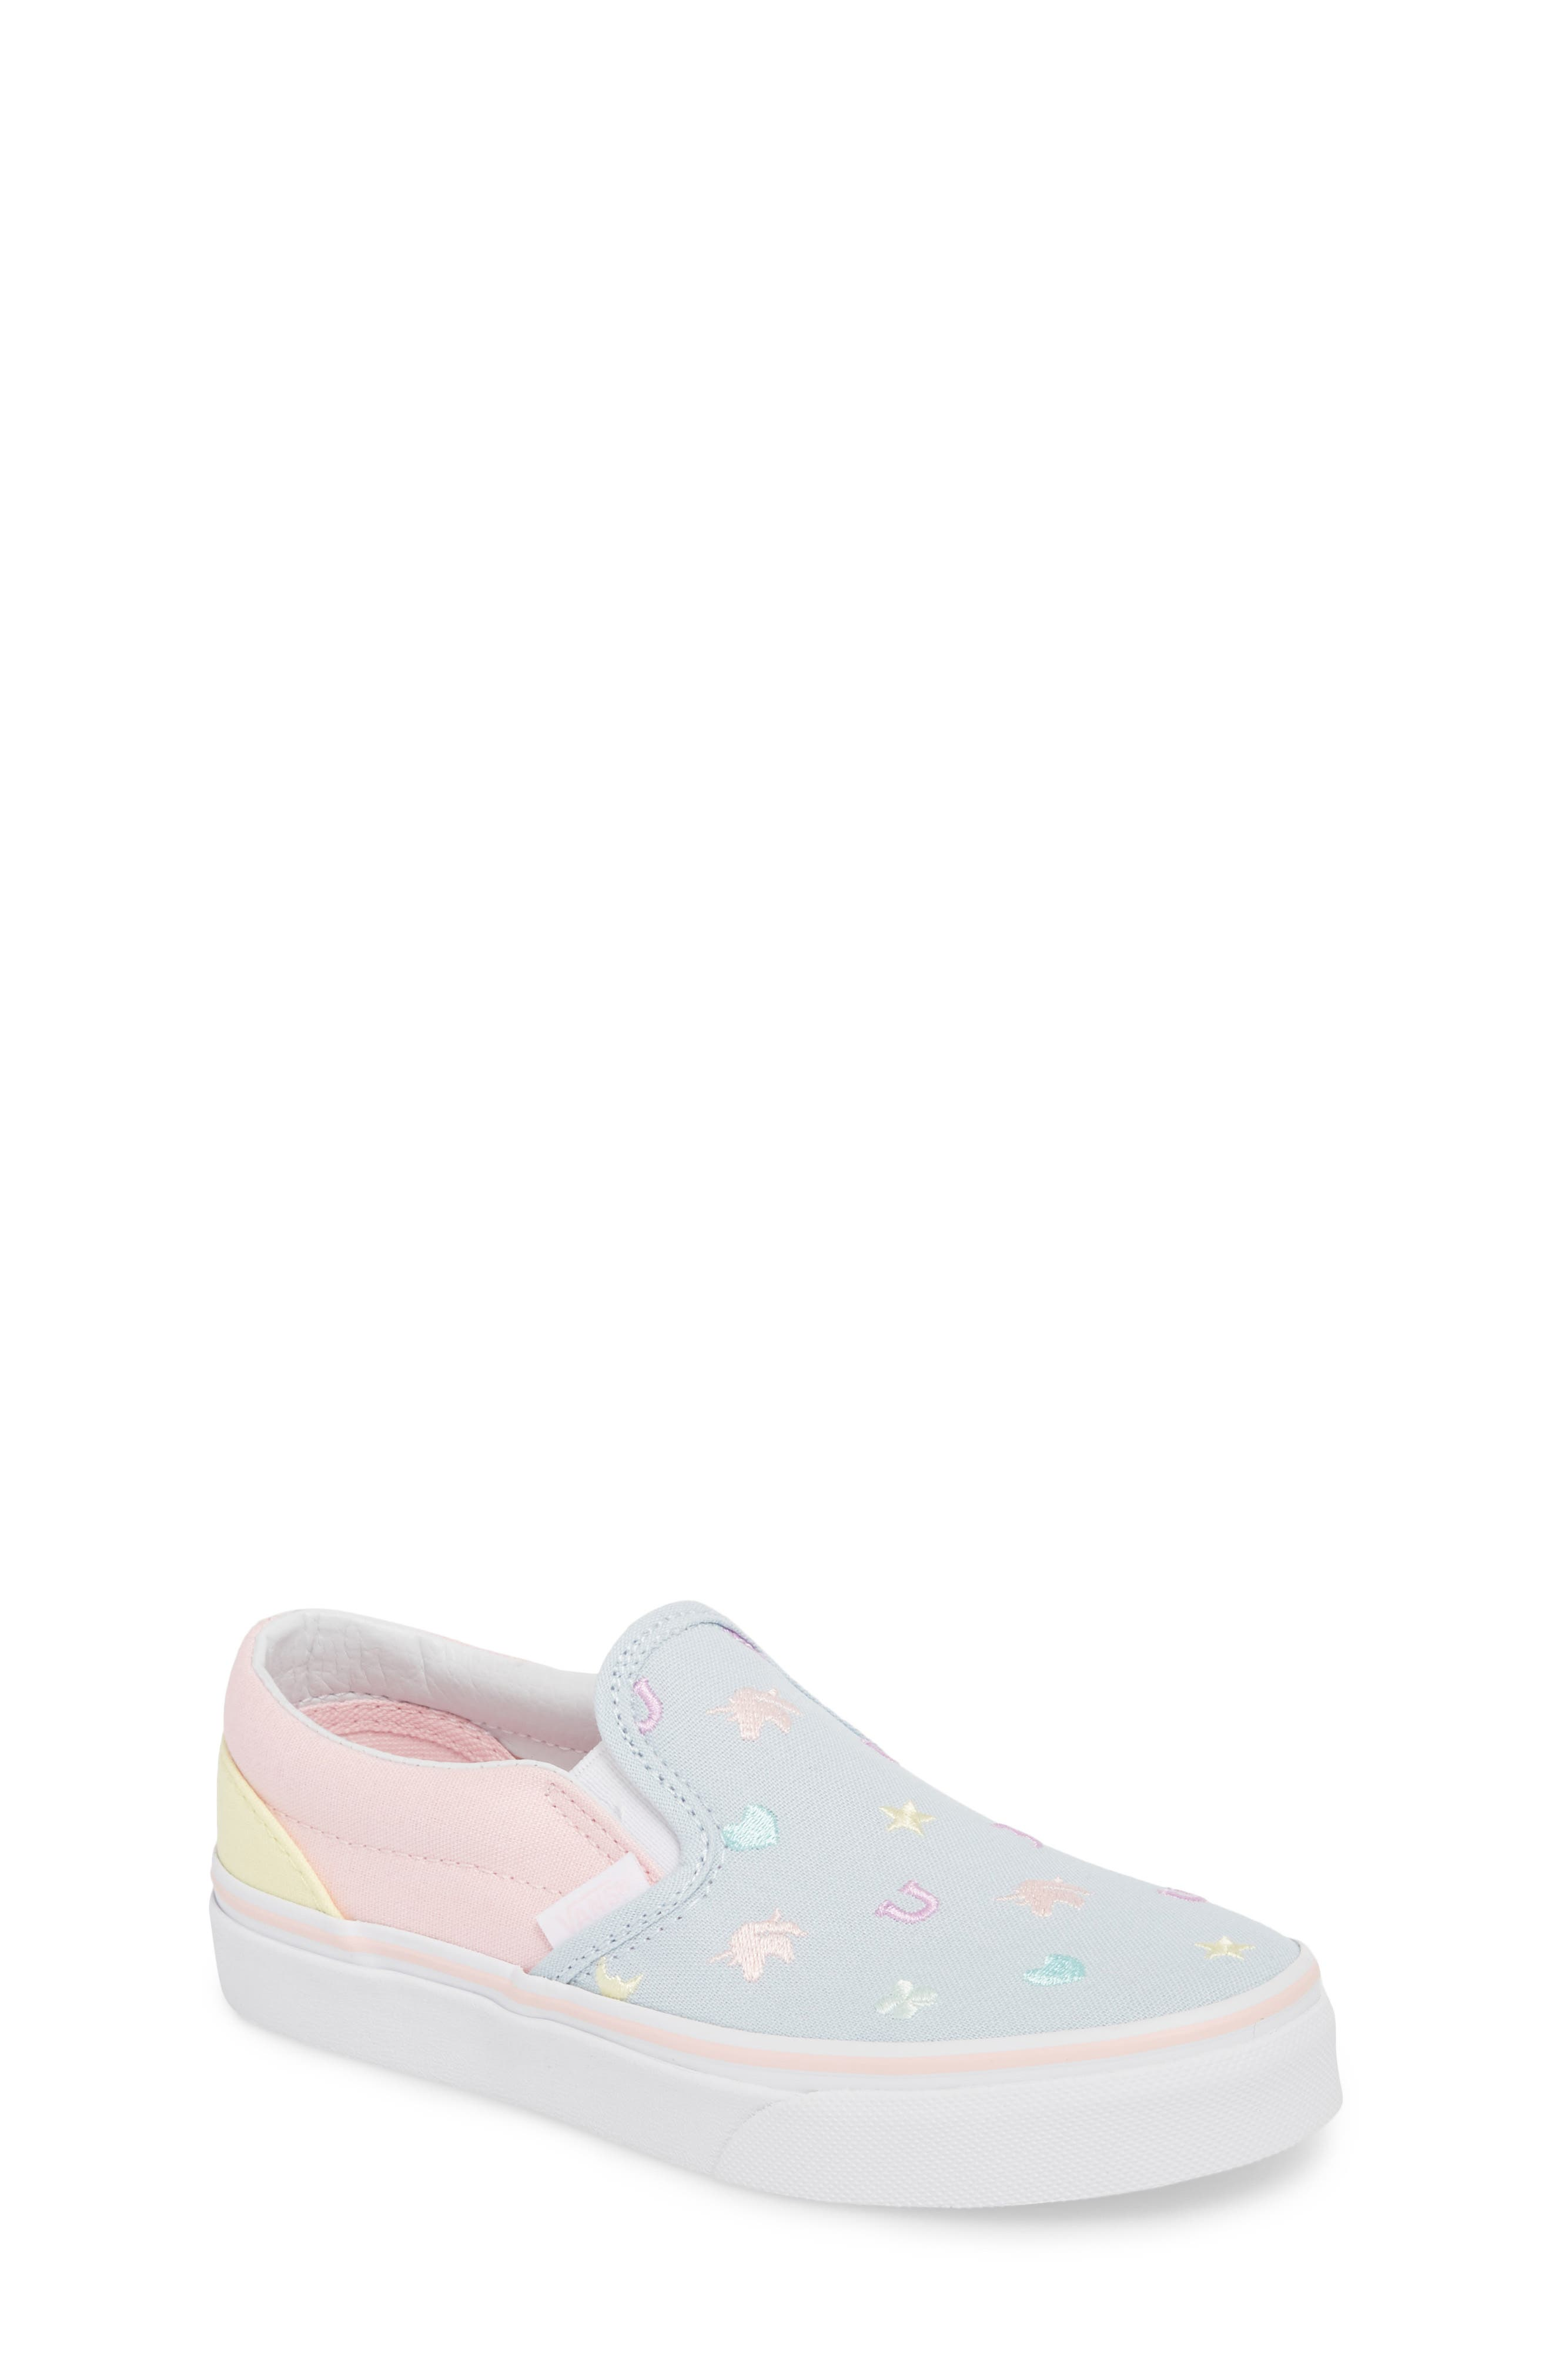 Classic Slip-On,                         Main,                         color, EMBROIDERED MULTI CHARMS